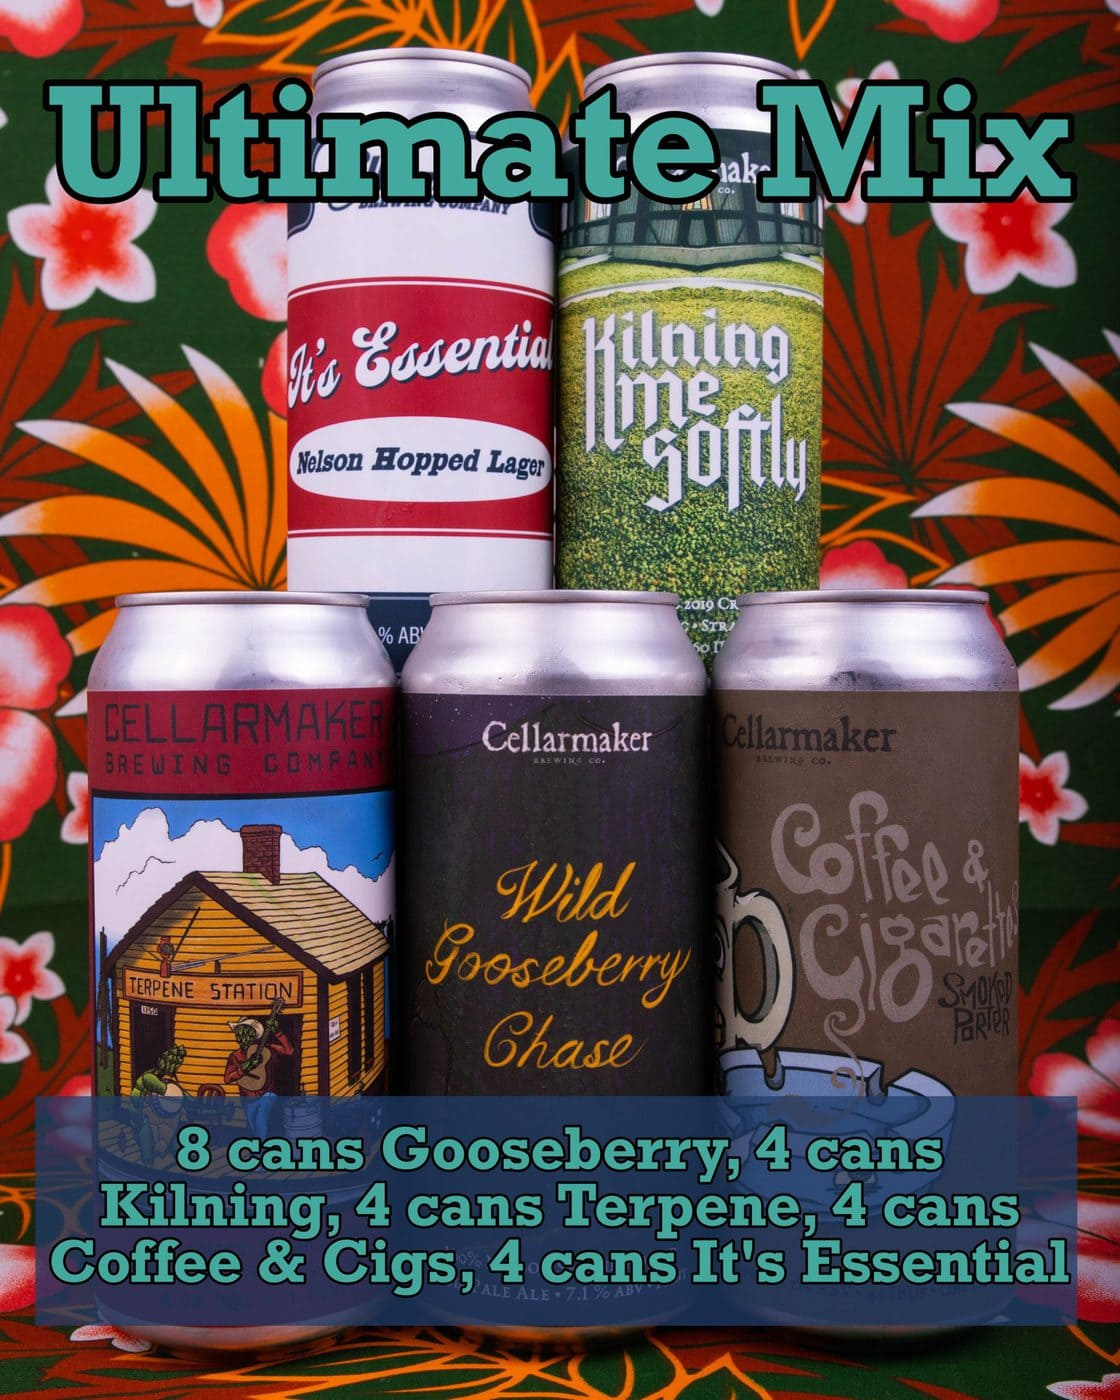 ULTIMATE MIX 24 CANS ~ 8 Wild Gooseberry Chase IPA, 4 Kilning Me Softly IPA, 4 Terpene Station DIPA, 4 Coffee & Cigs & 4 It's Essential! … SHIPPING Out On TUESDAY 8/11 For NEXT DAY Delivery*